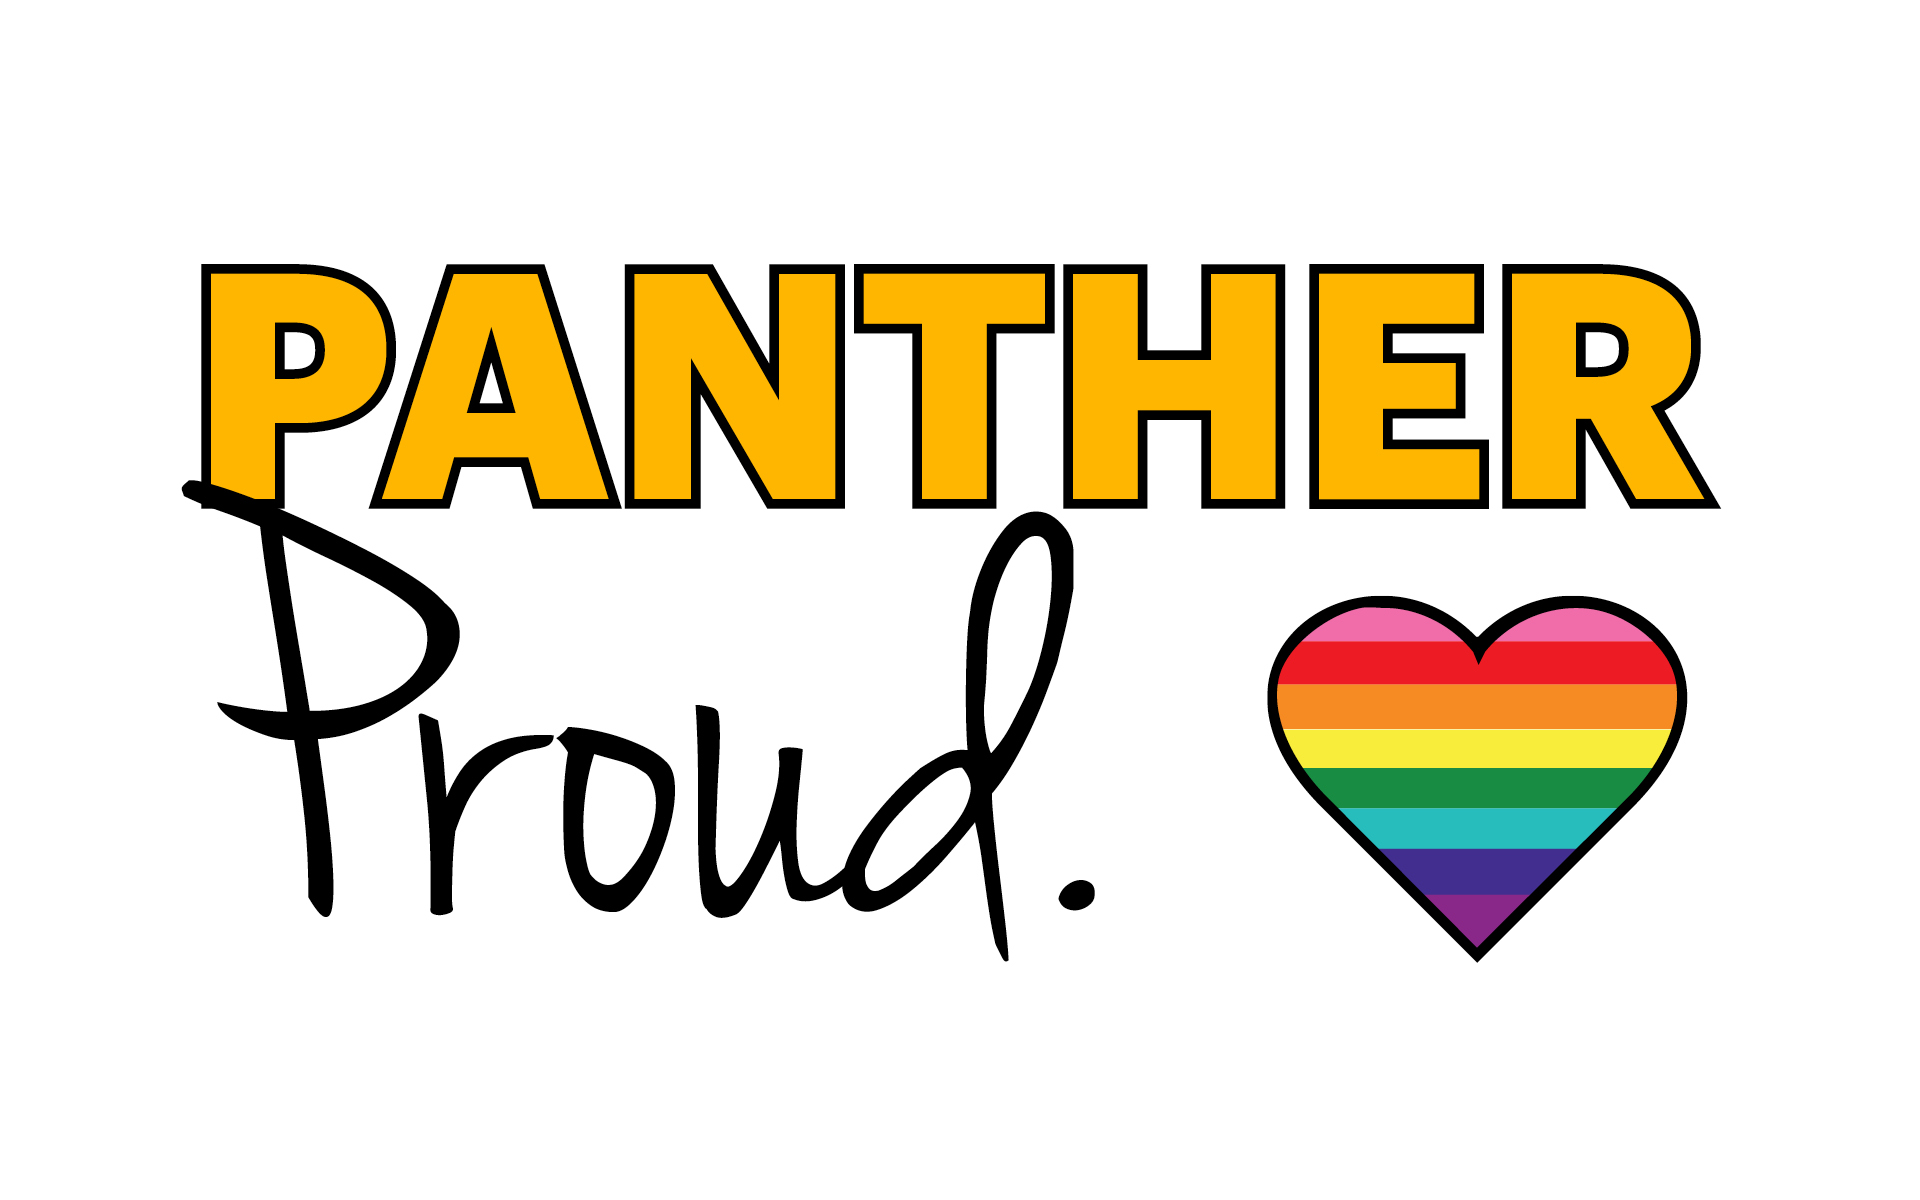 Adelphi Panter Pride LGBTQ Wallpaper - Design Preview